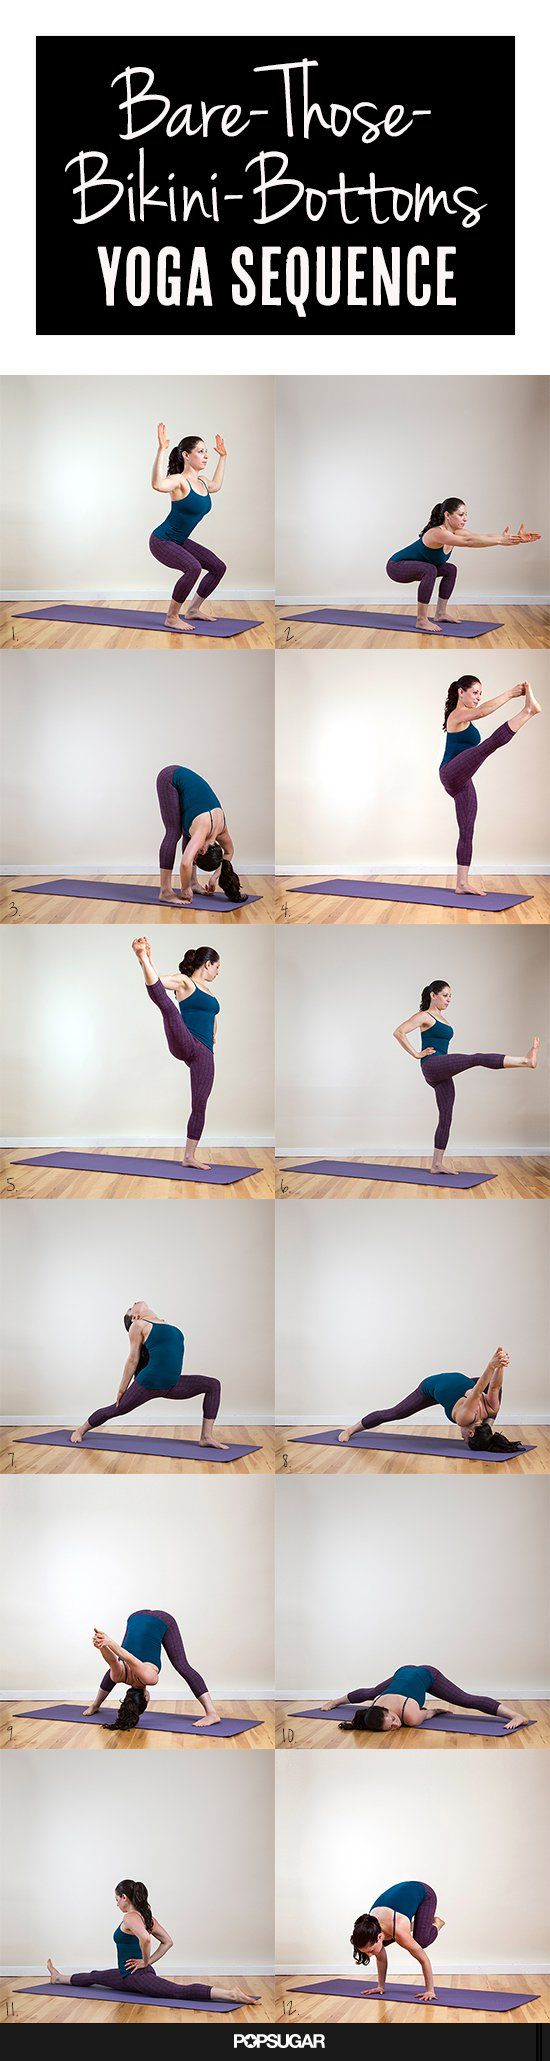 Pin for Later: Yoga to Rock Your Bikini Bottoms